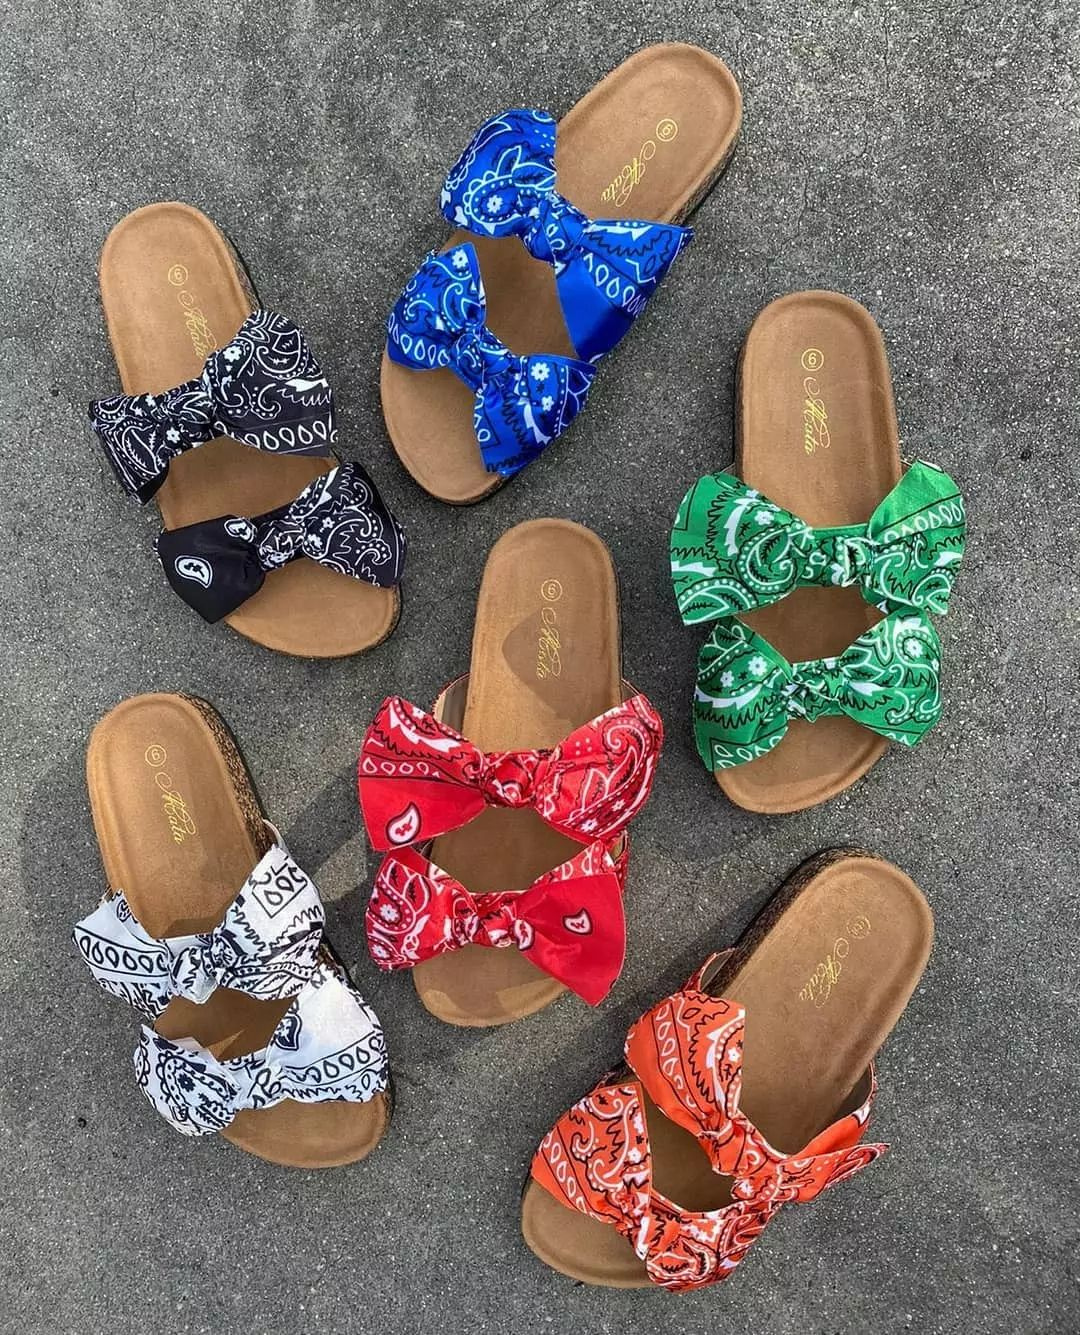 Happyslides Orange Pink Blue Bandana Printed Ins Slip On Slide Footwear Slipper Flat Bow Sandals Bandana Slides